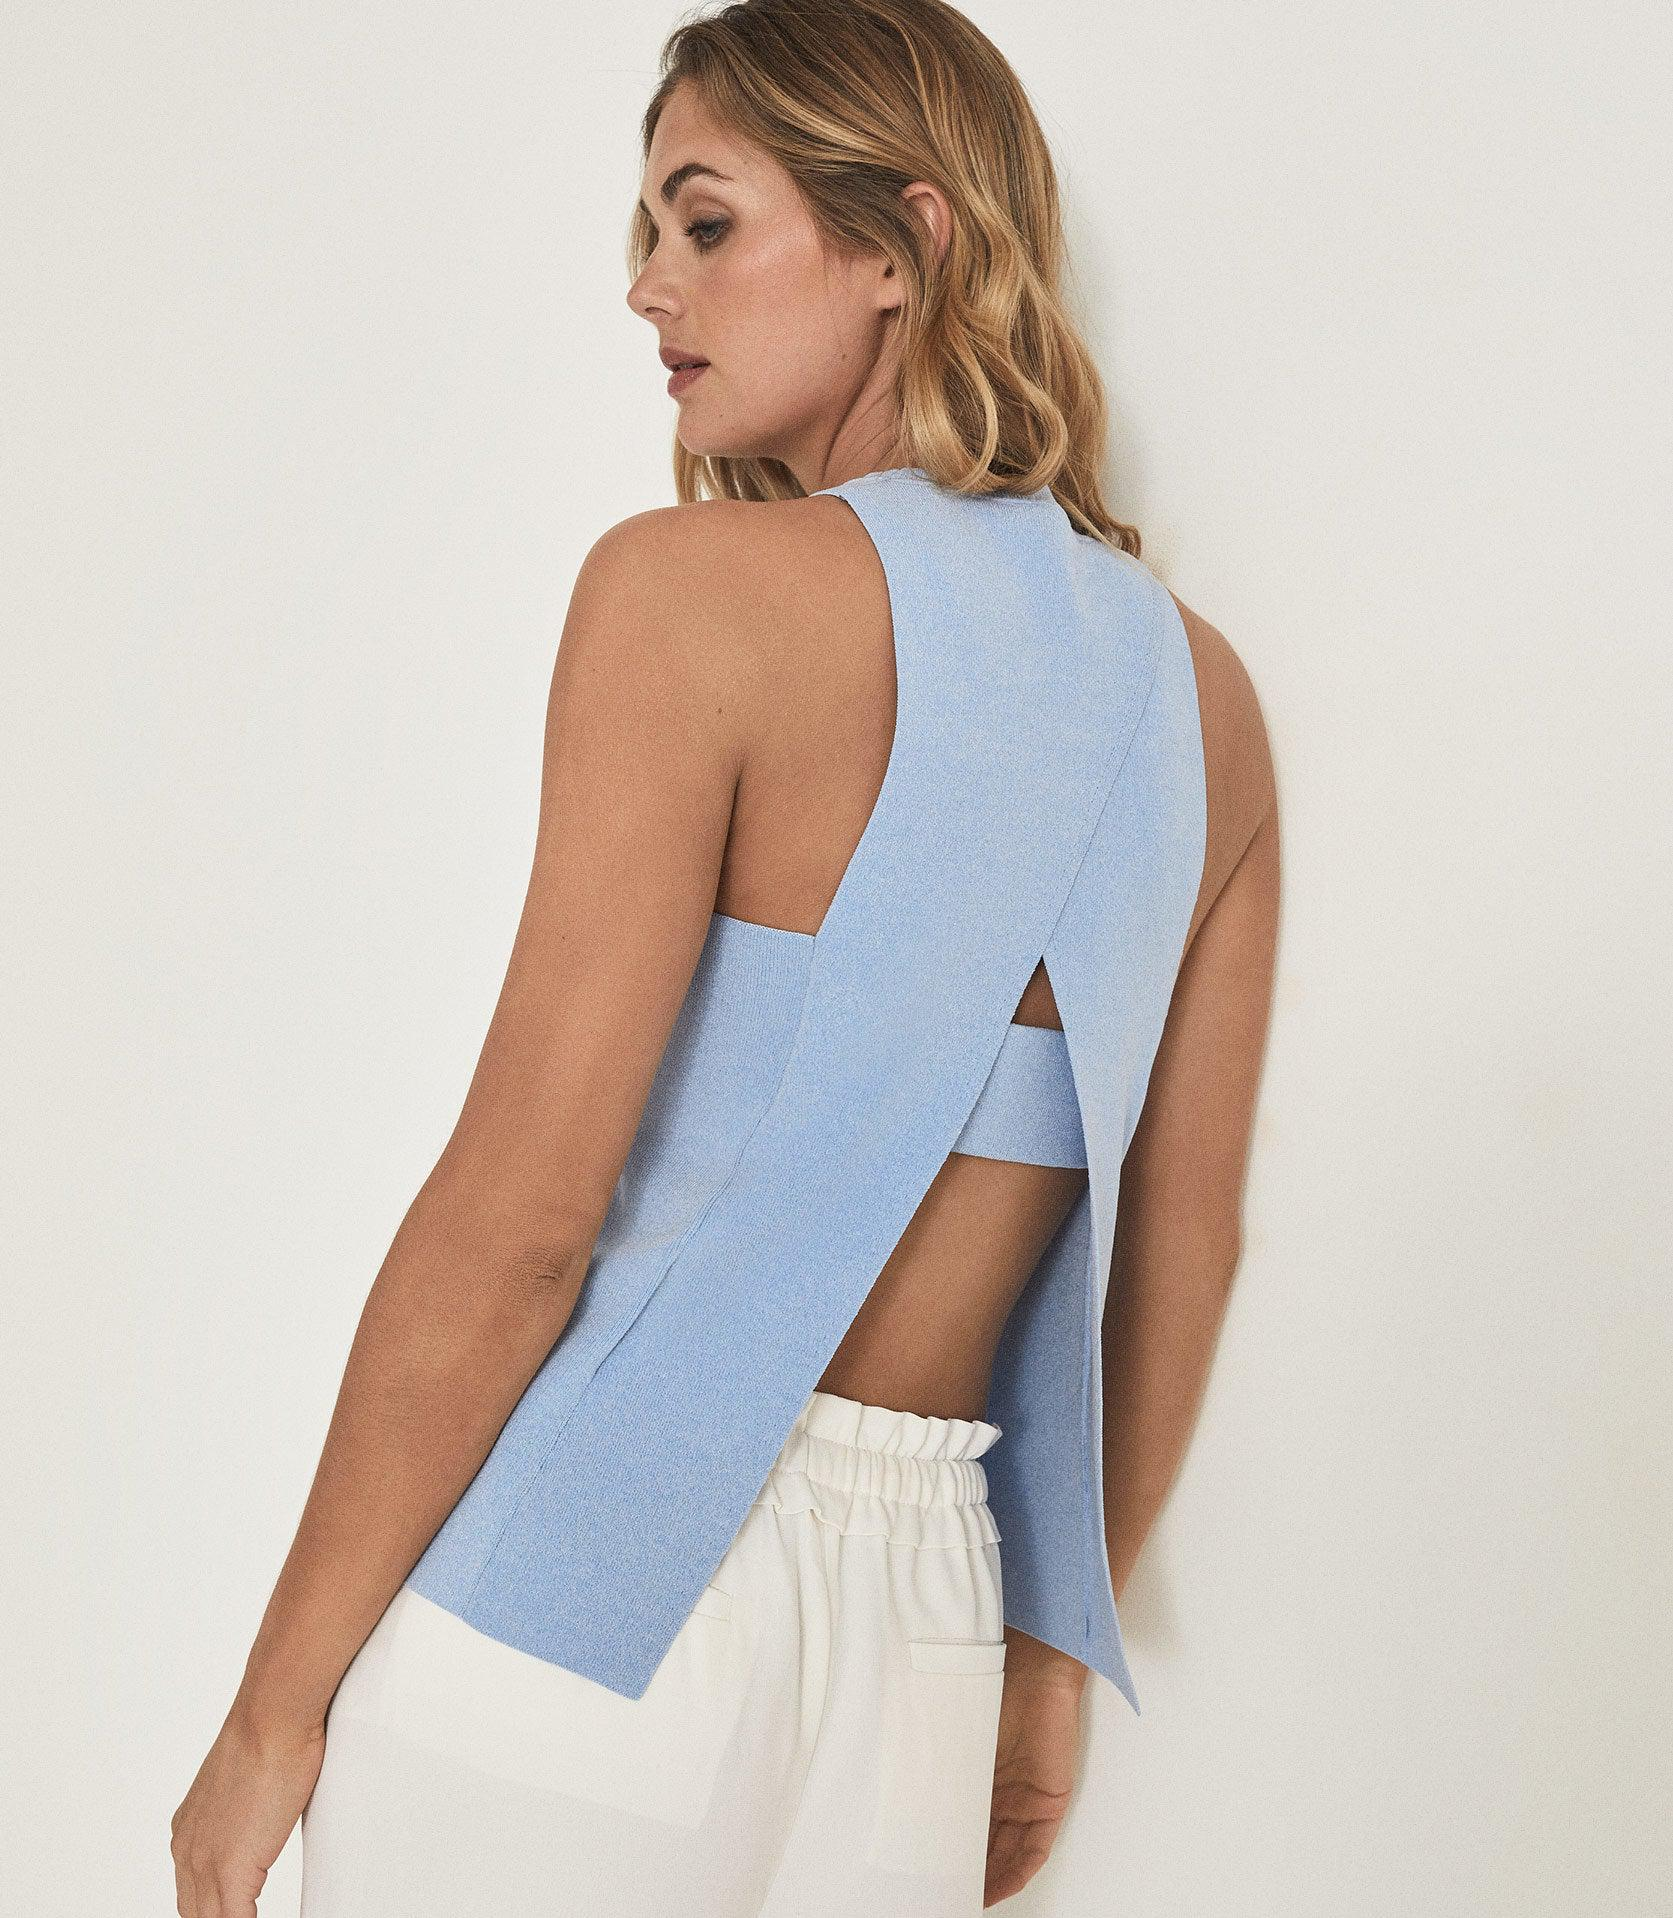 HEIDI - KNITTED OPEN BACK TOP 1